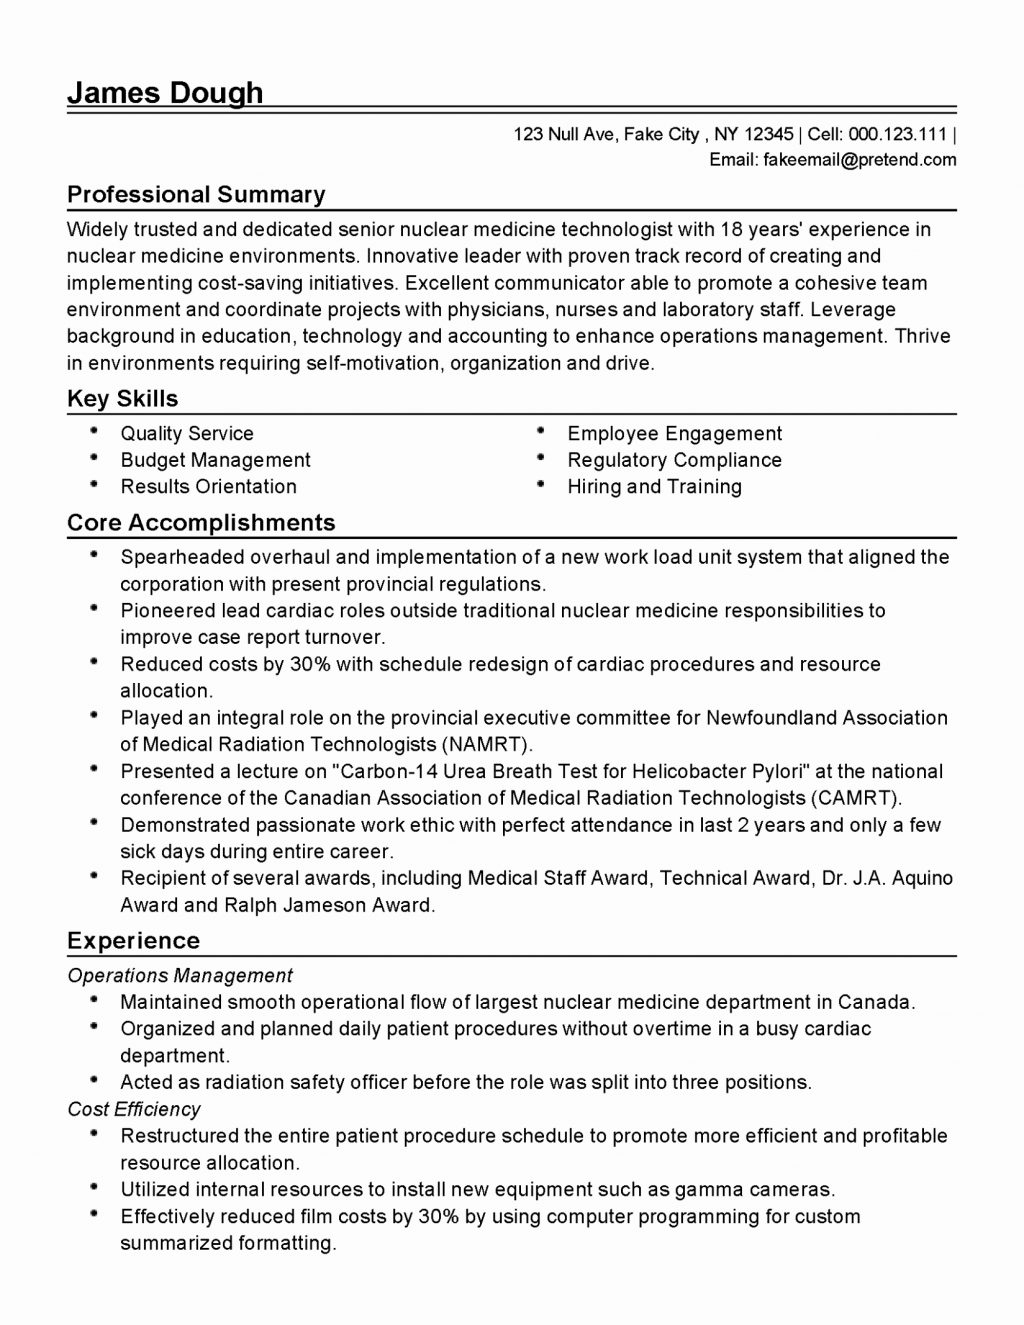 Cover Letter Template Ucla